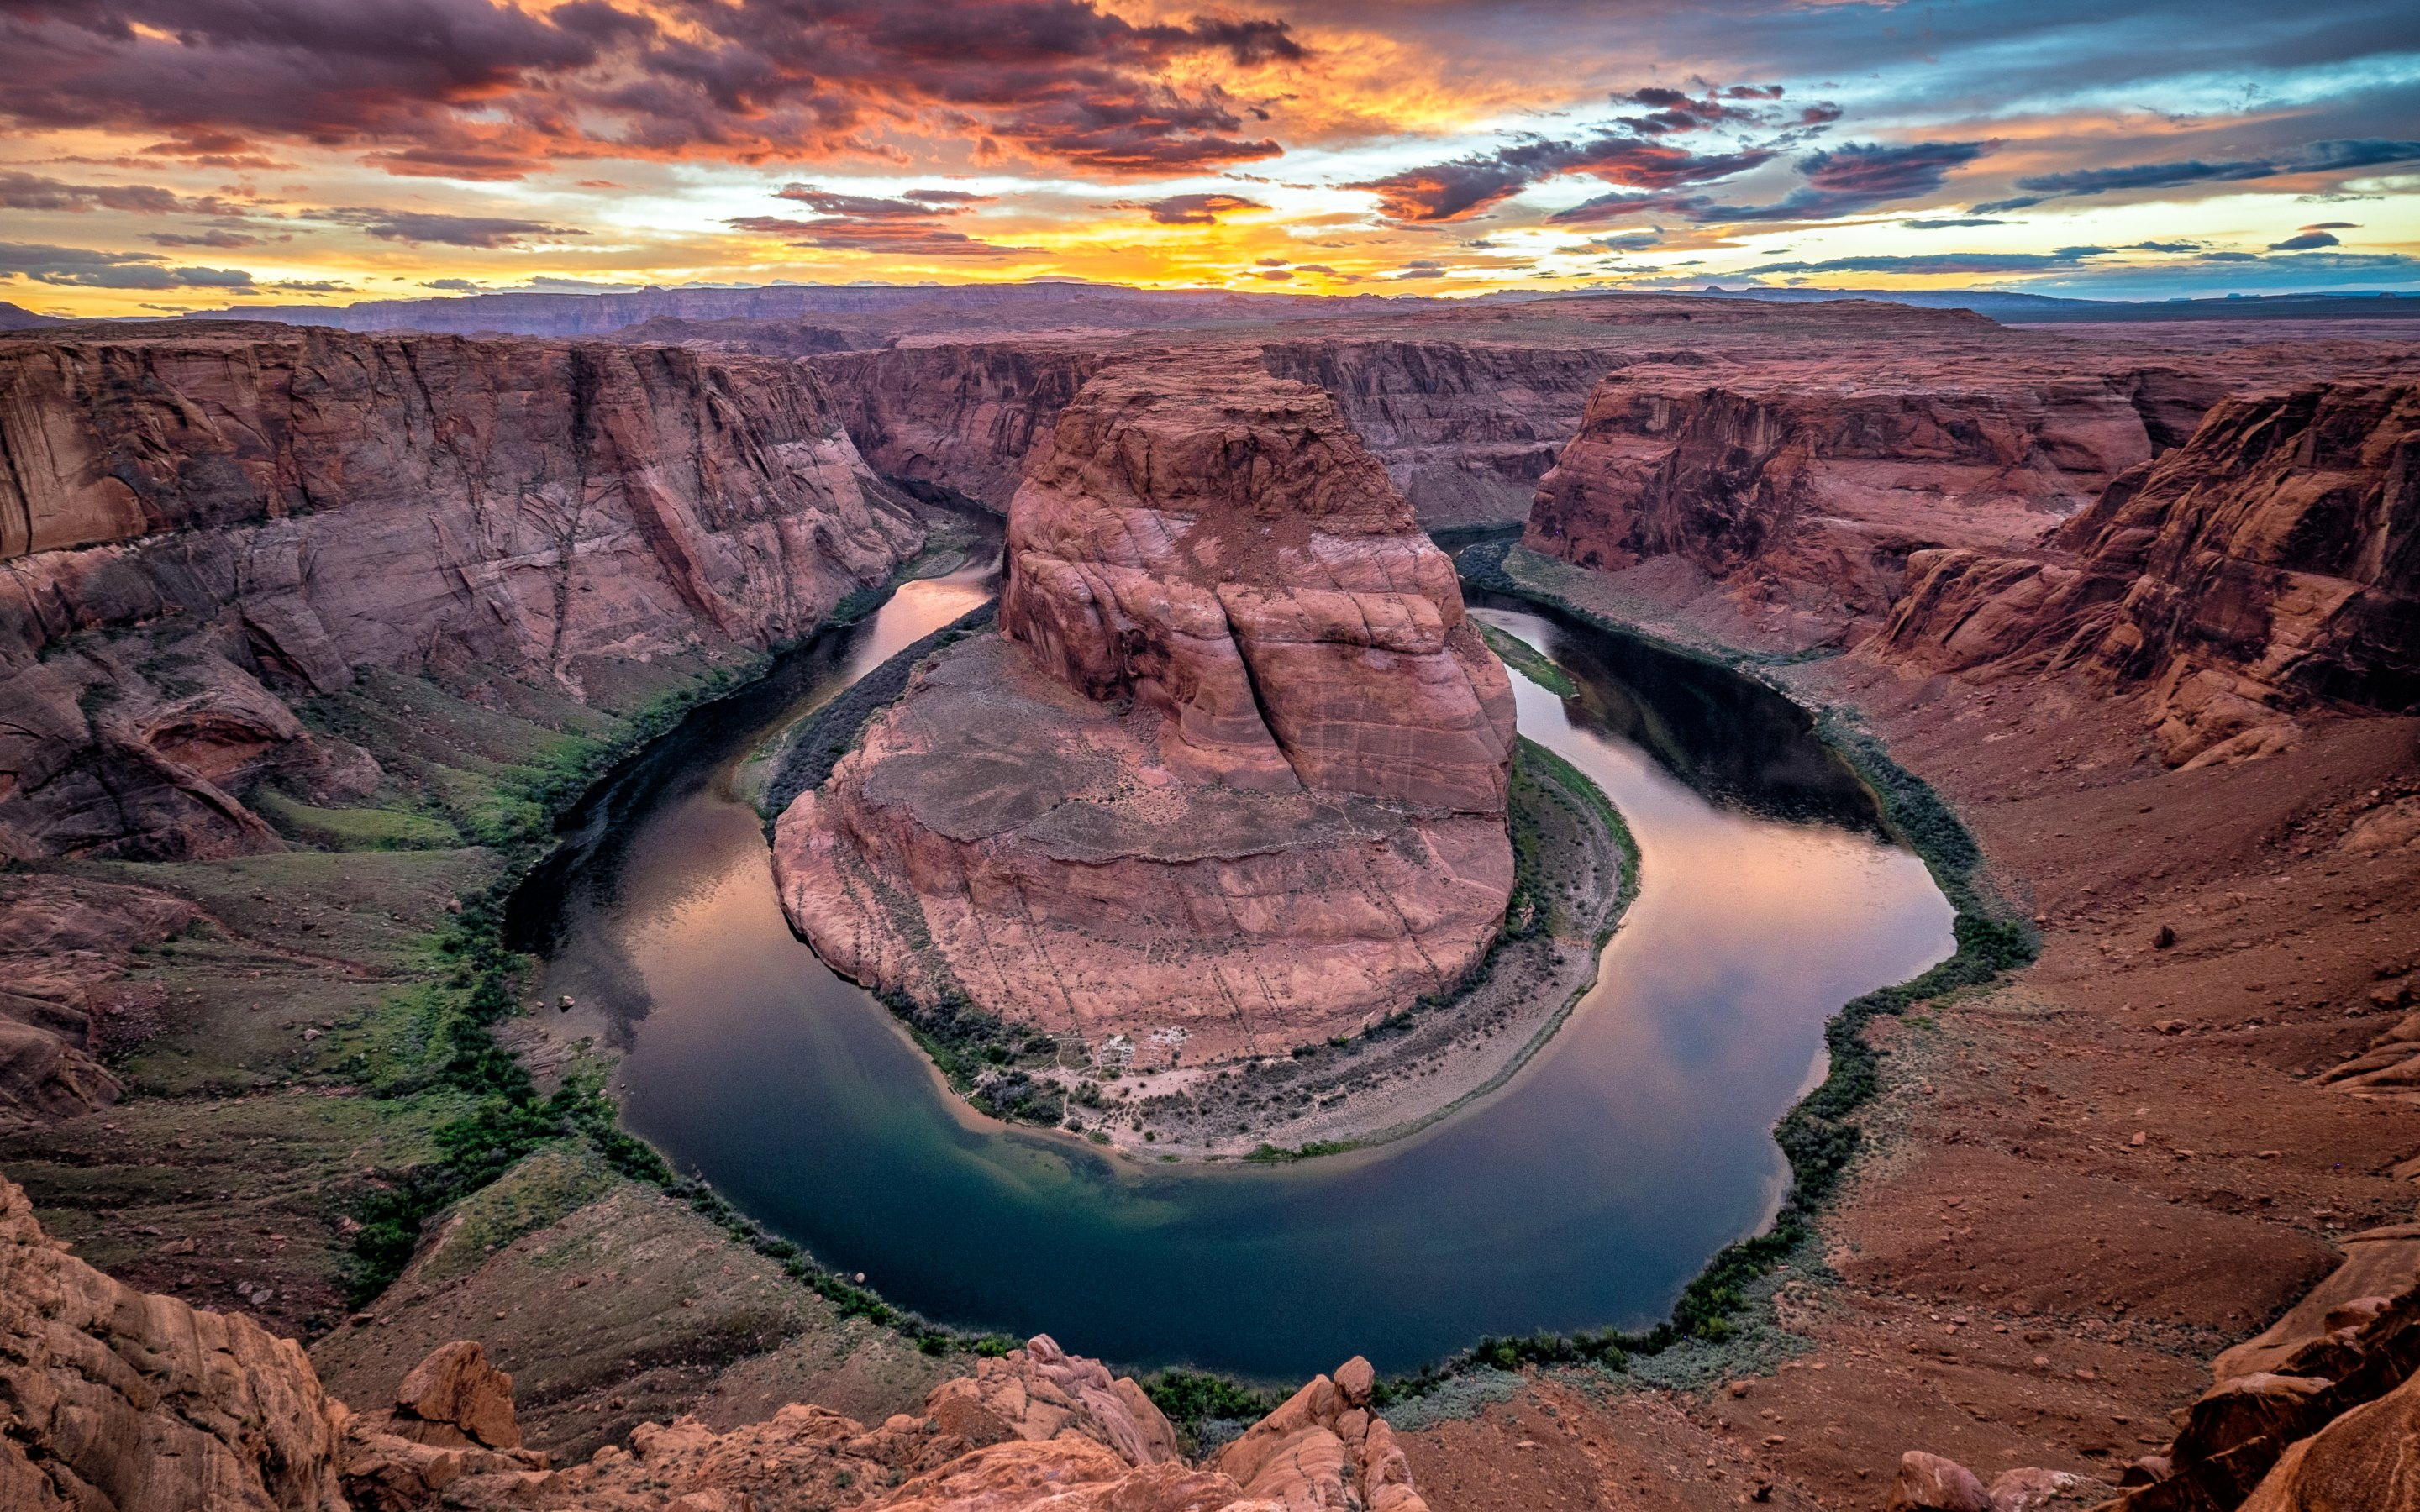 Horseshoe bend hd - photo#5